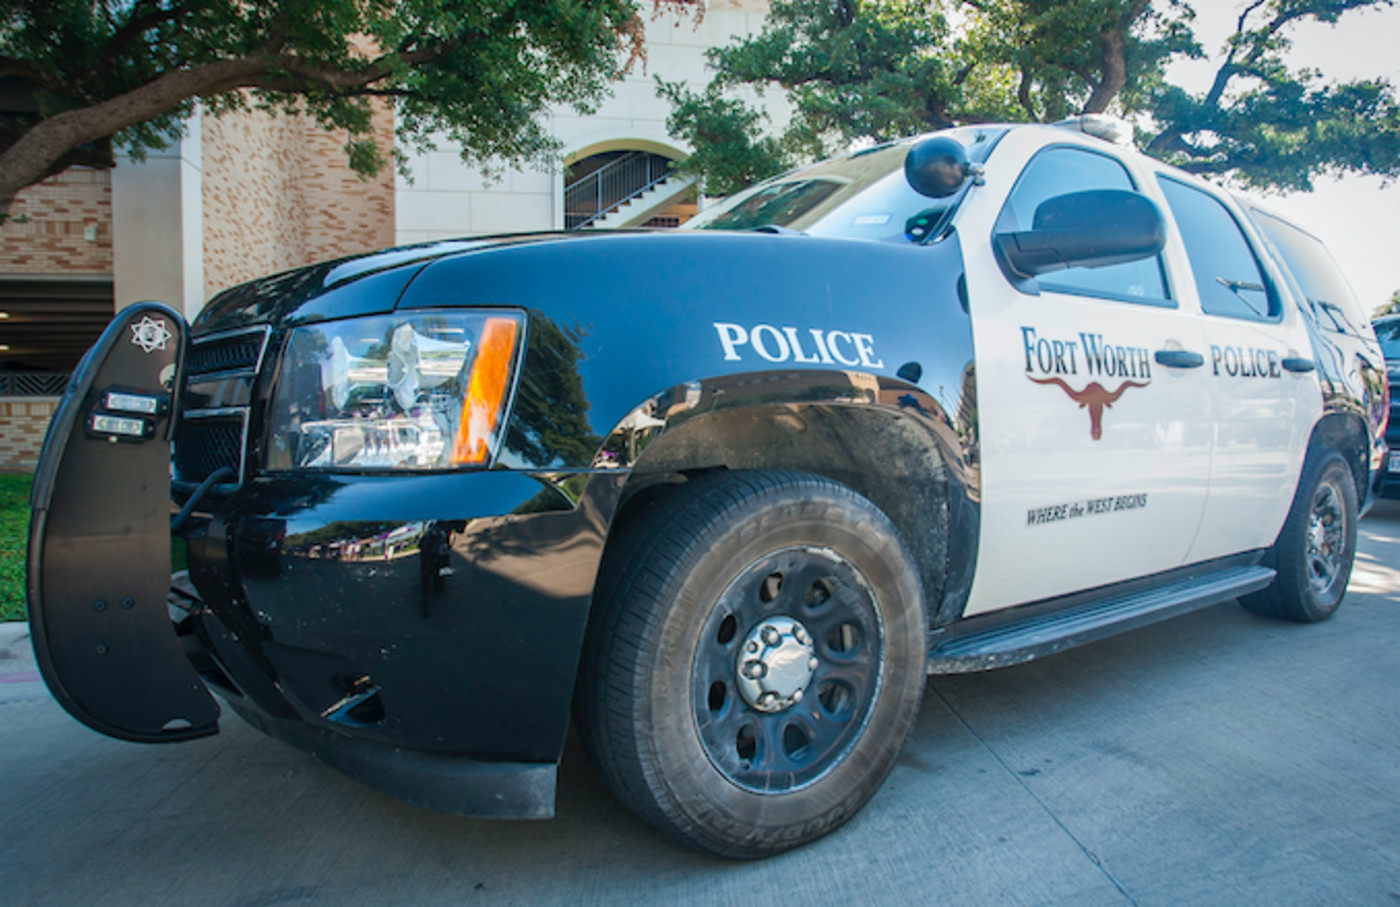 Fort Worth PD